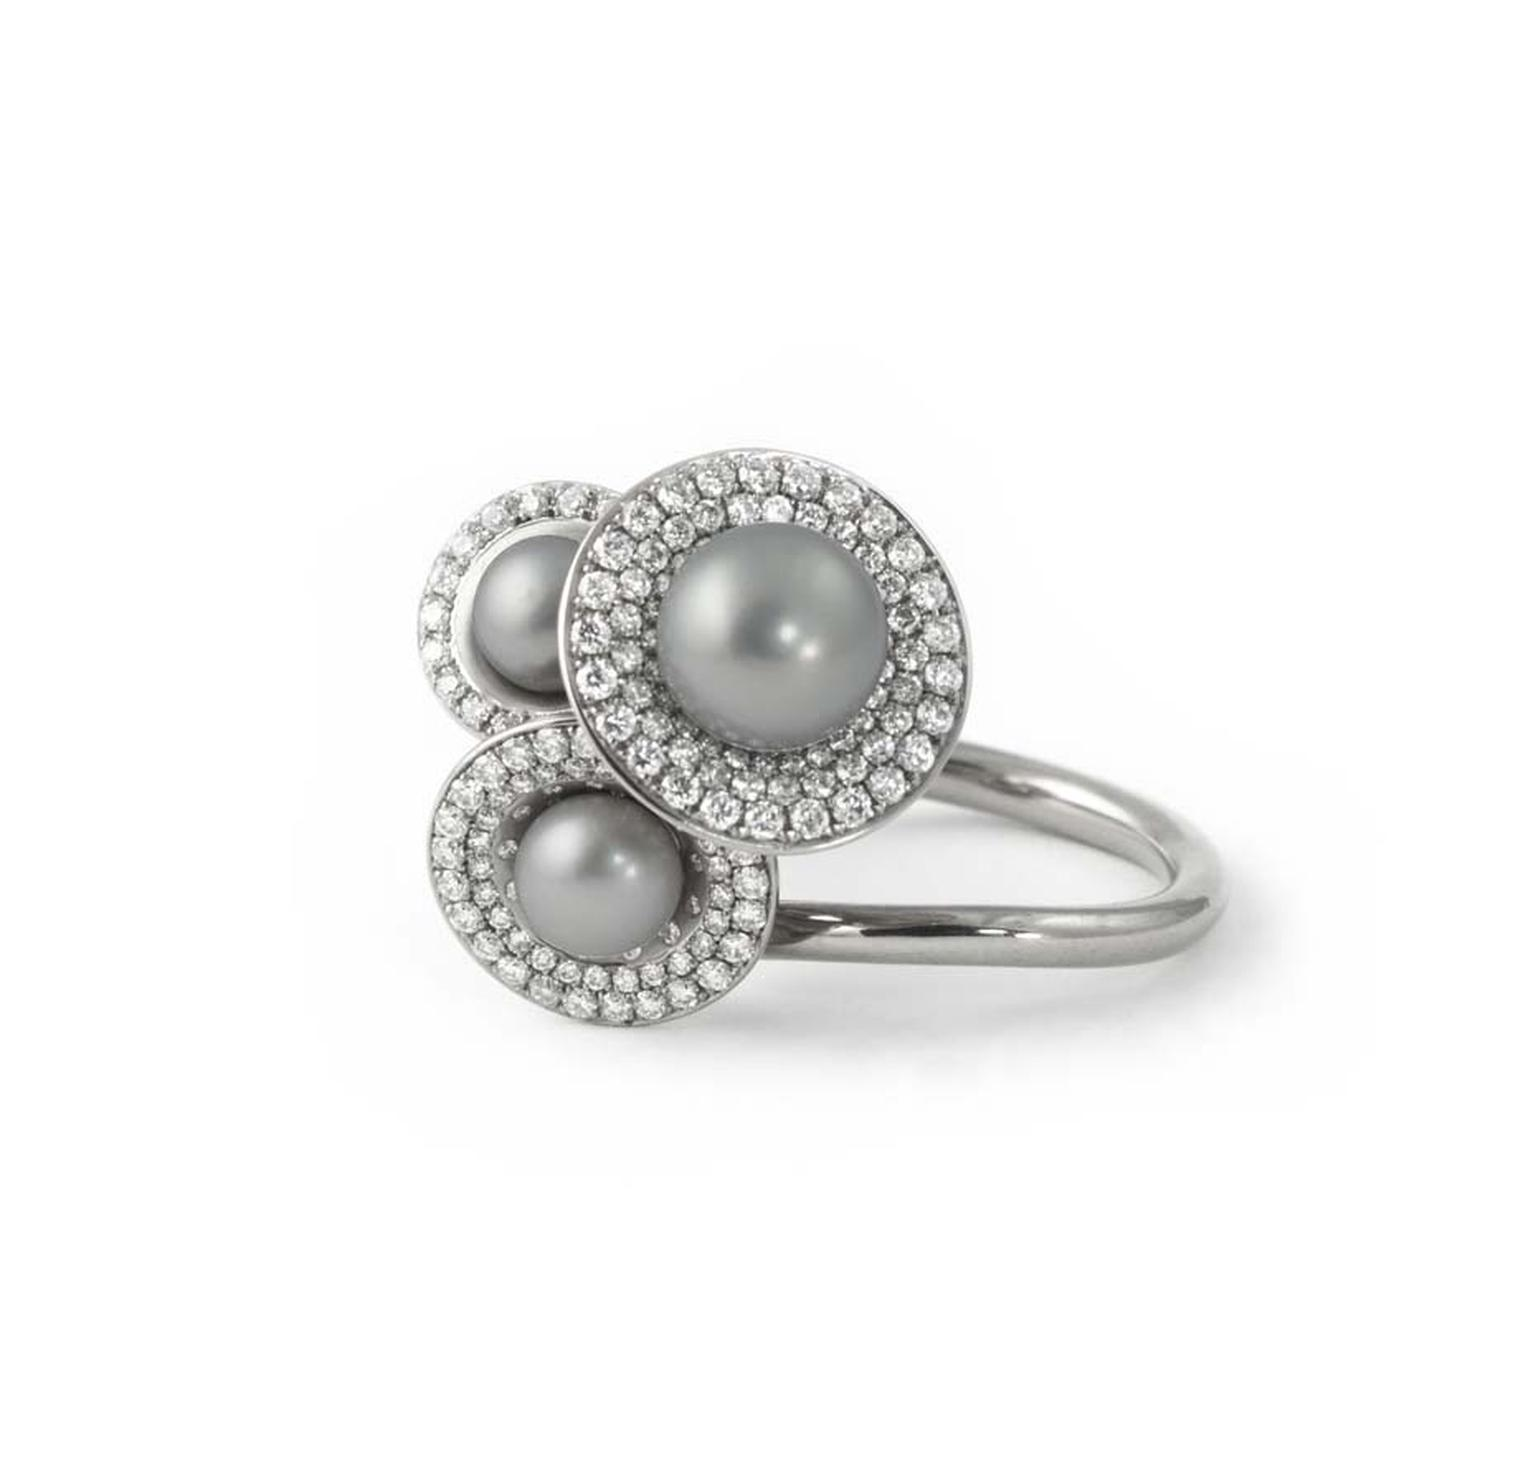 Jessica Poole Jubilee ring in white gold featuring three grey pearls surrounded by micro pavé diamonds is the perfect choice for those seeking unique engagement rings.